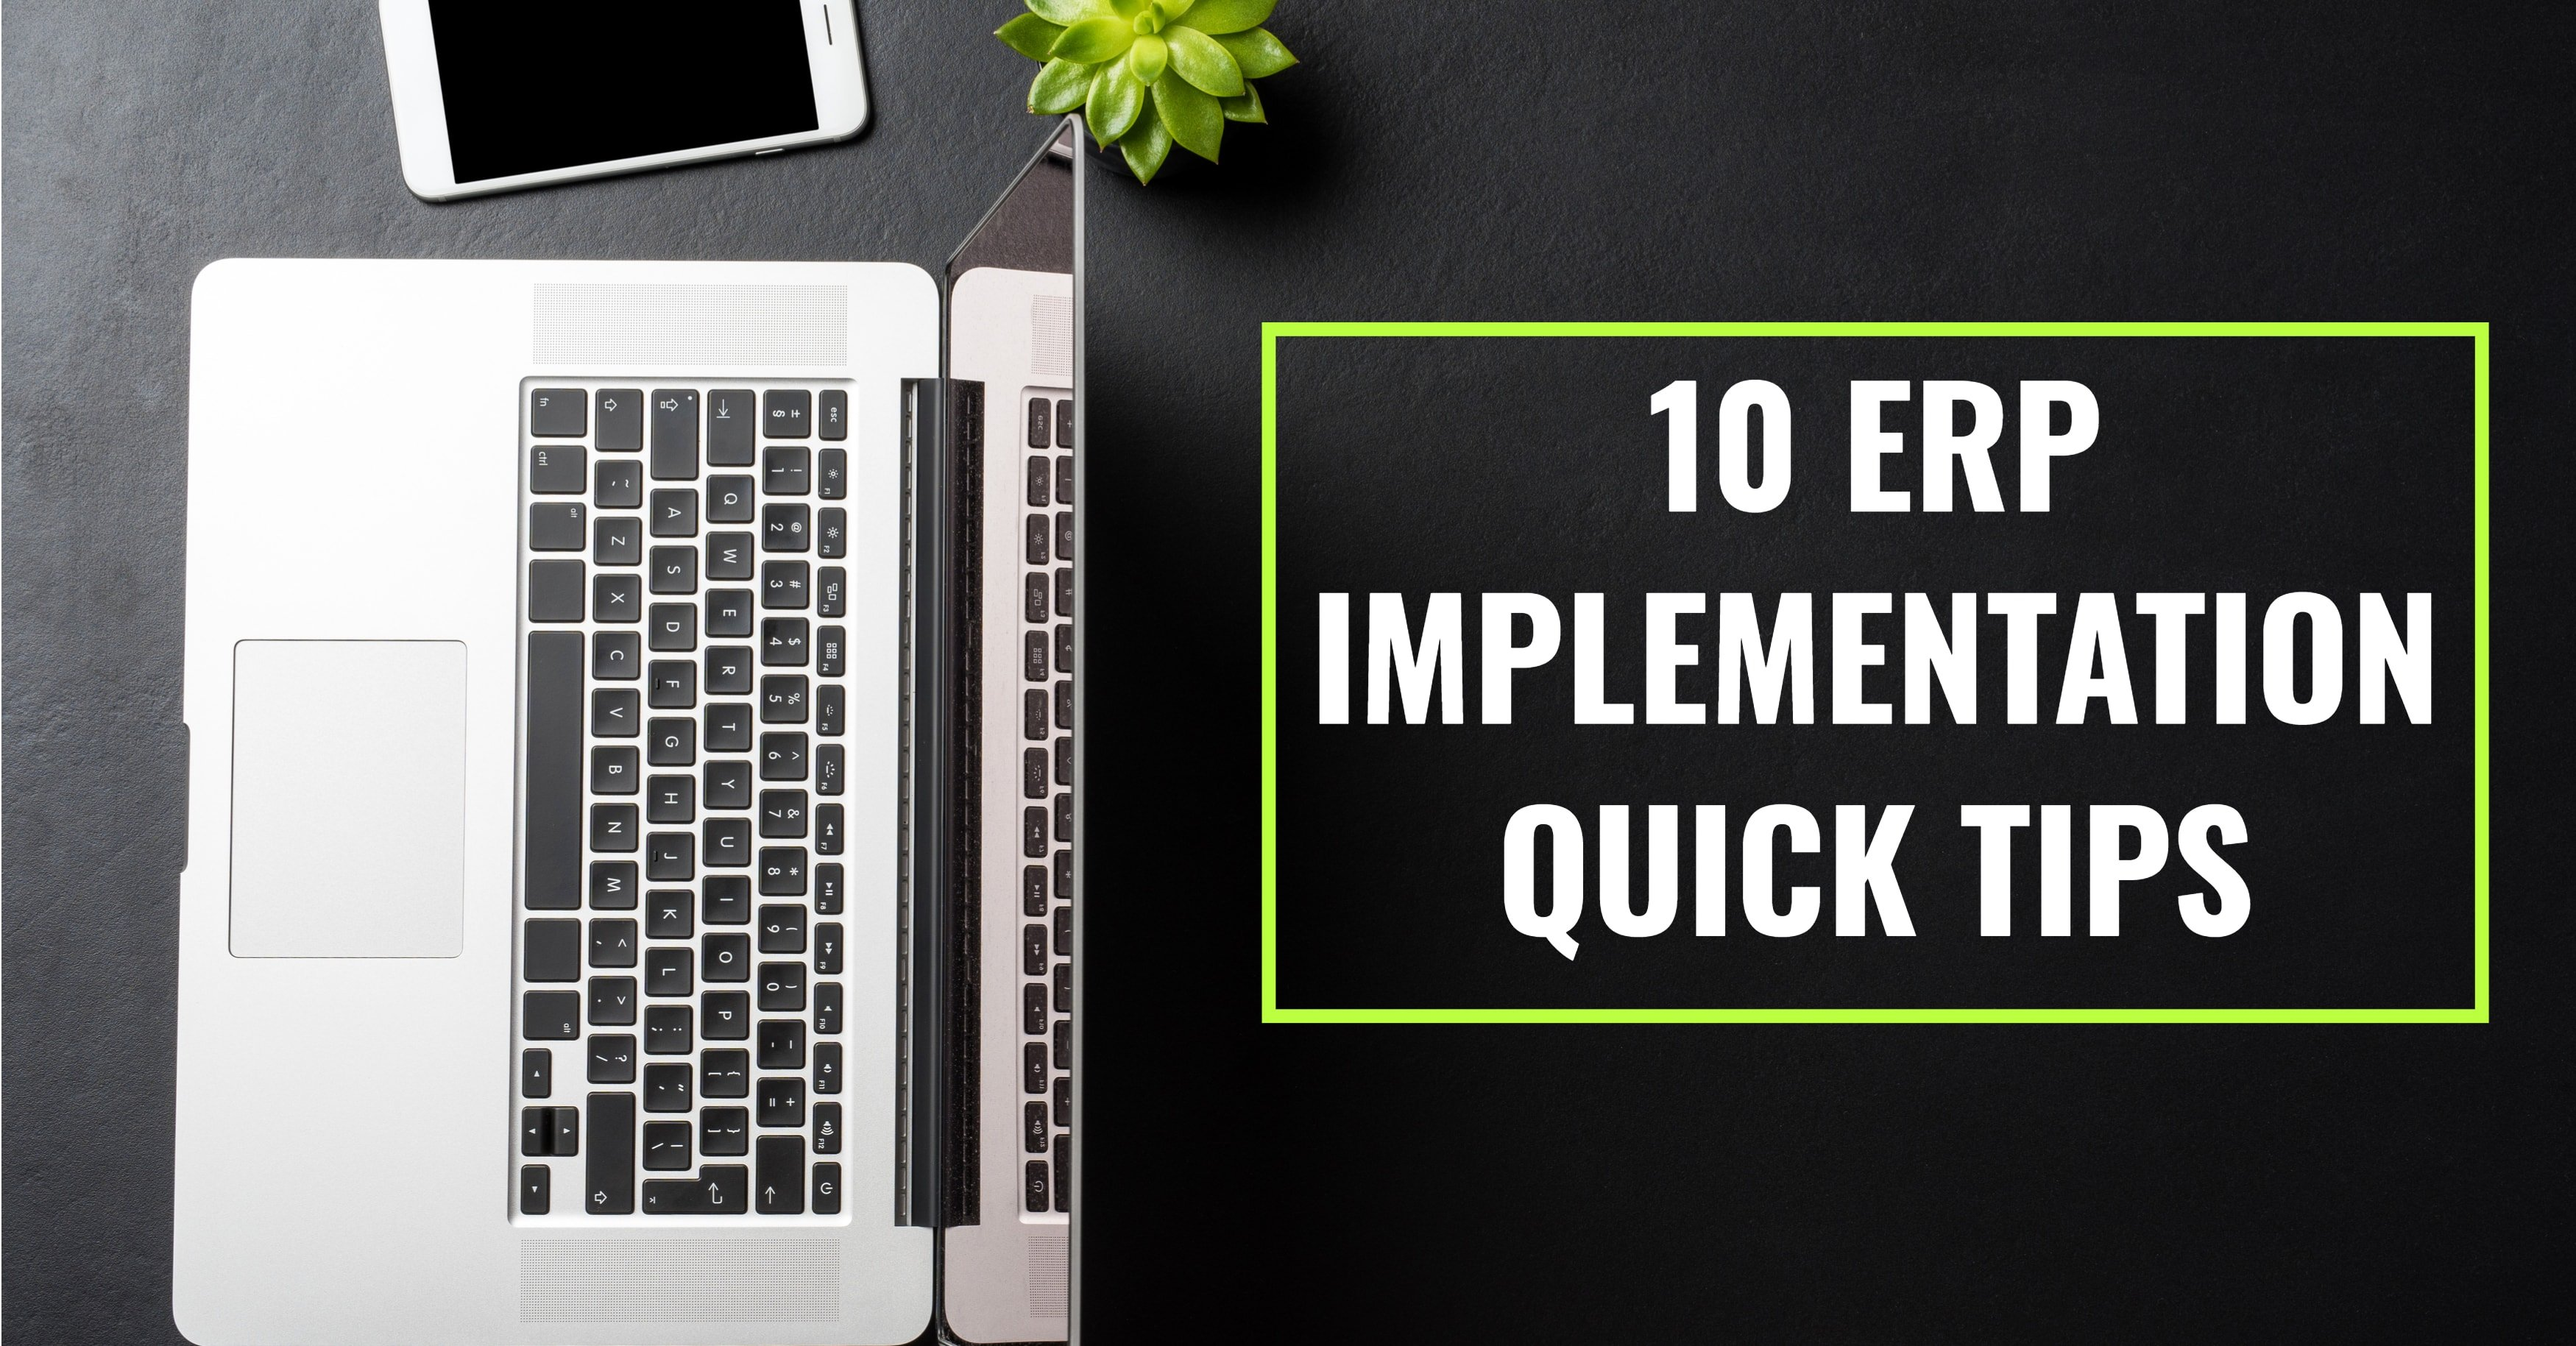 10 ERP Implementation Quick Tips